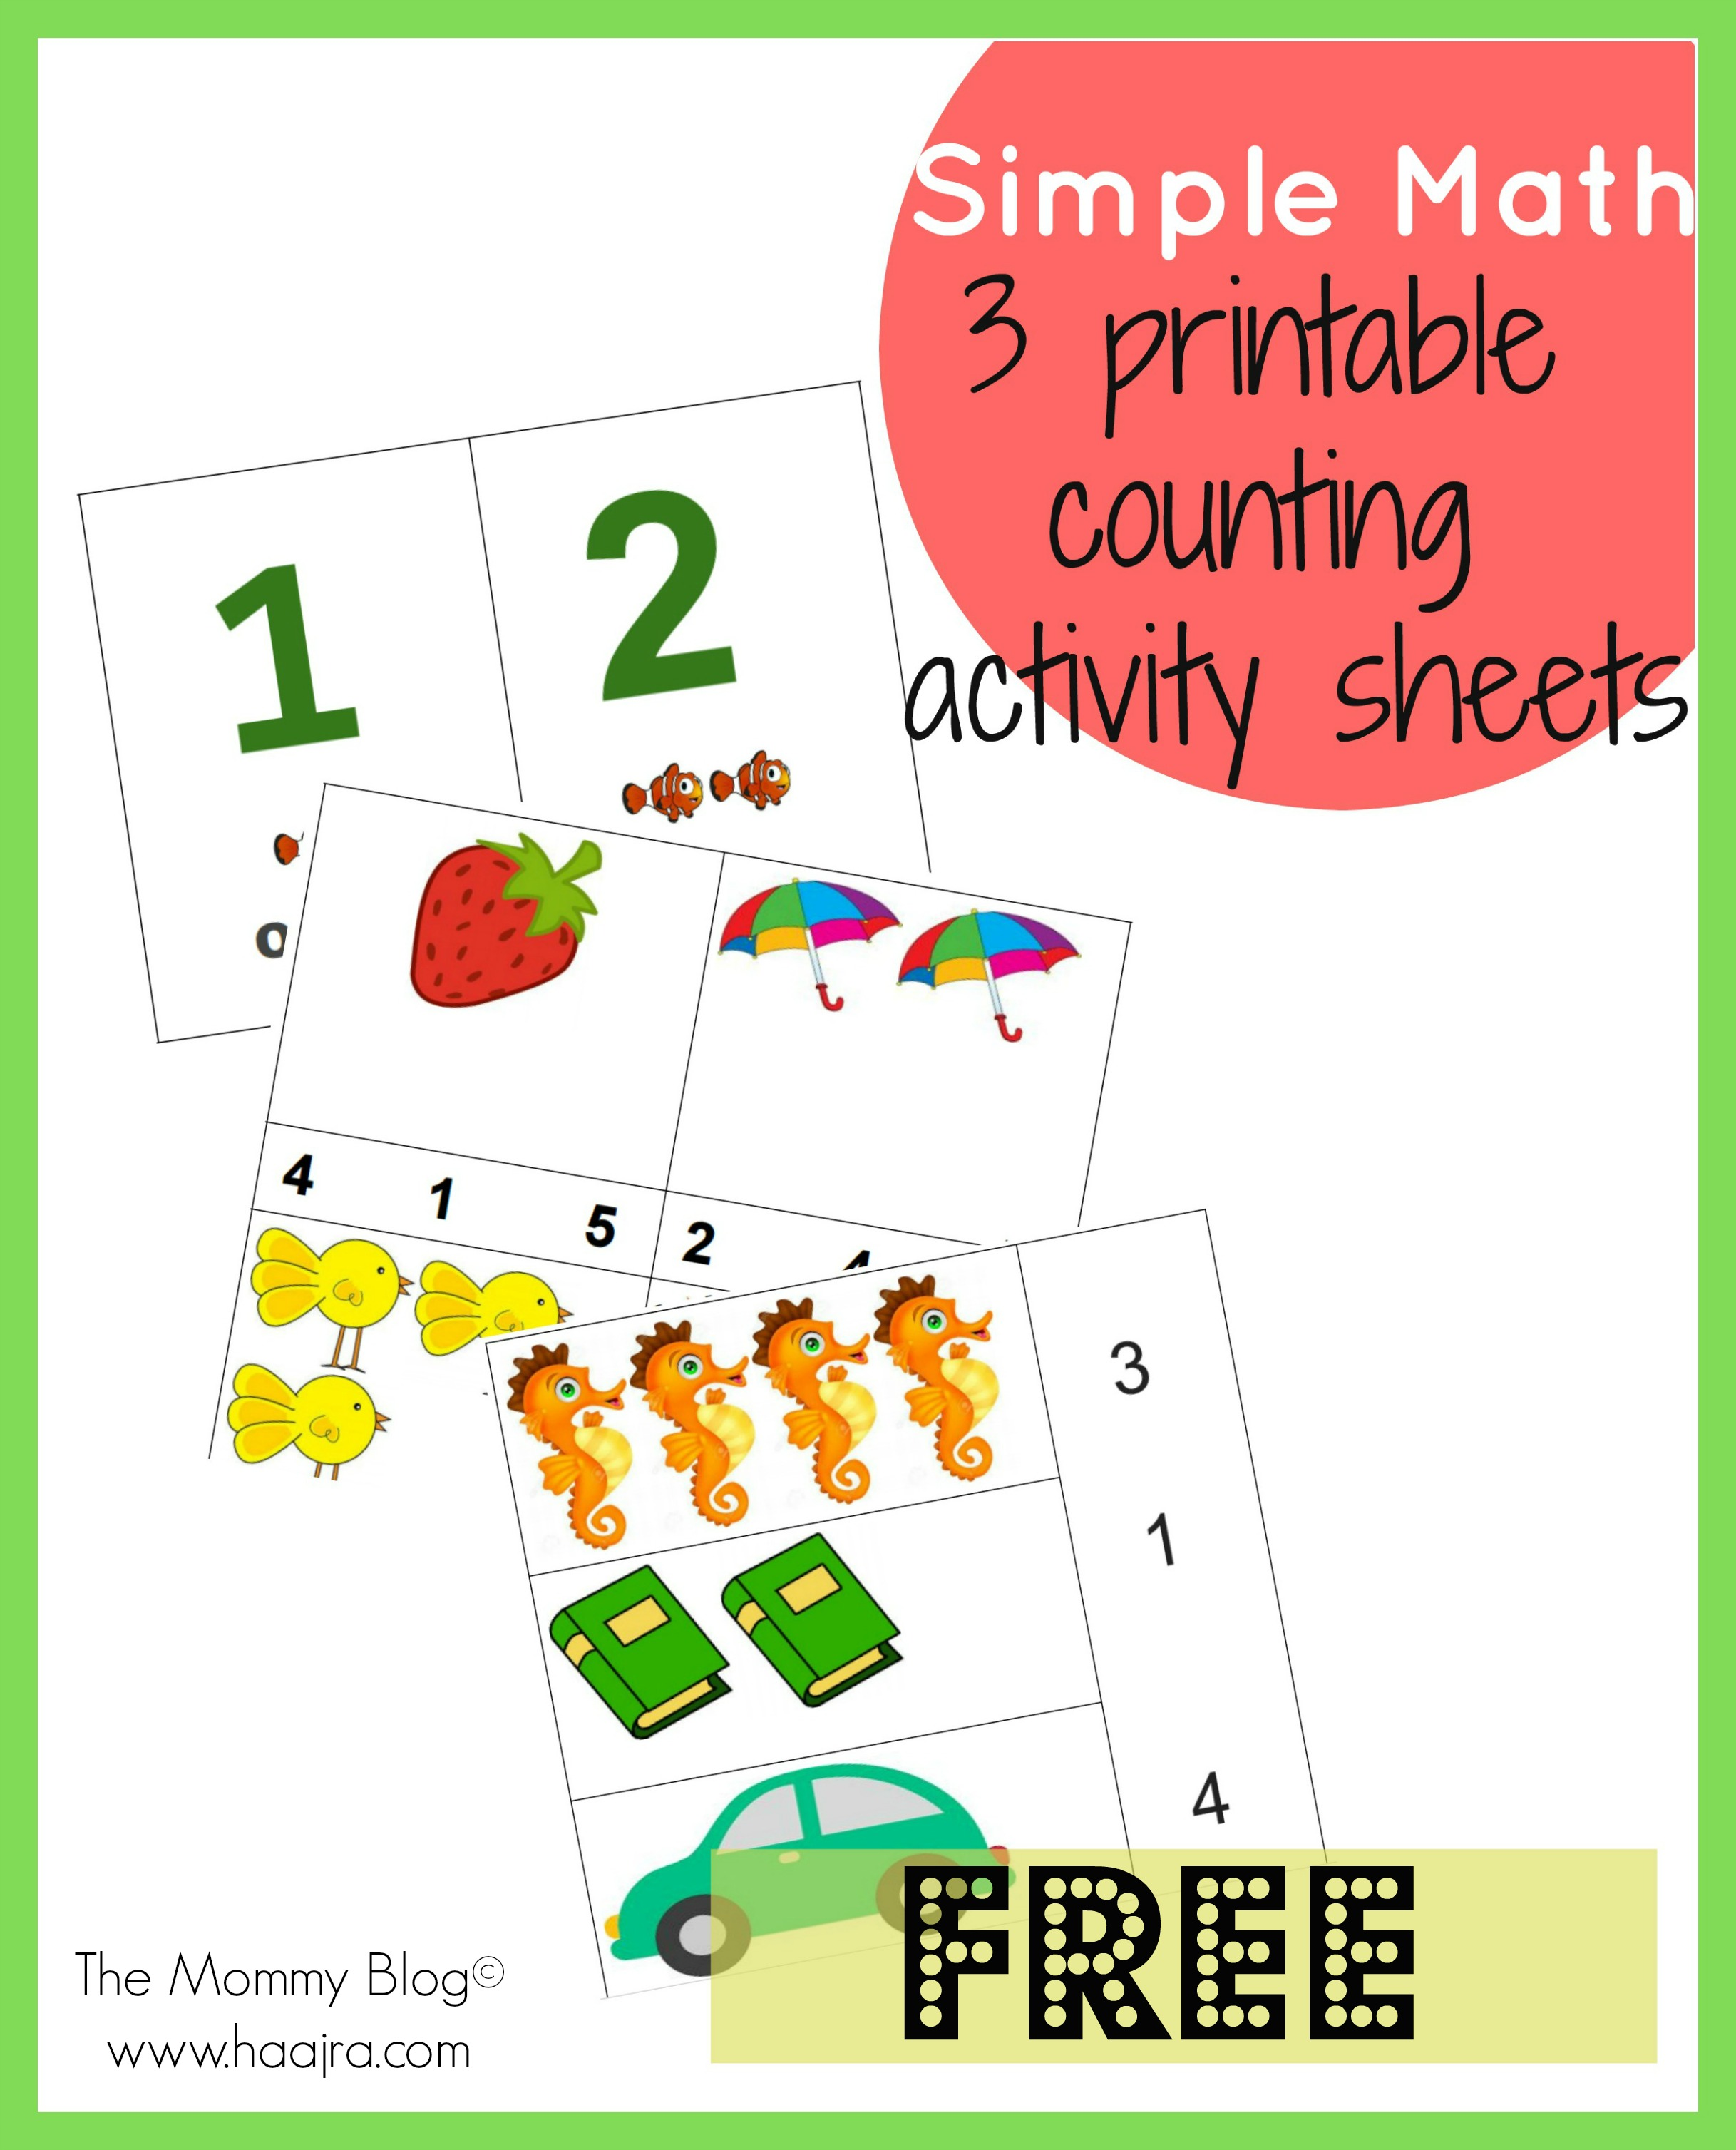 3 Simple Math Printable Counting Activity Sheets | The Mommy Blog